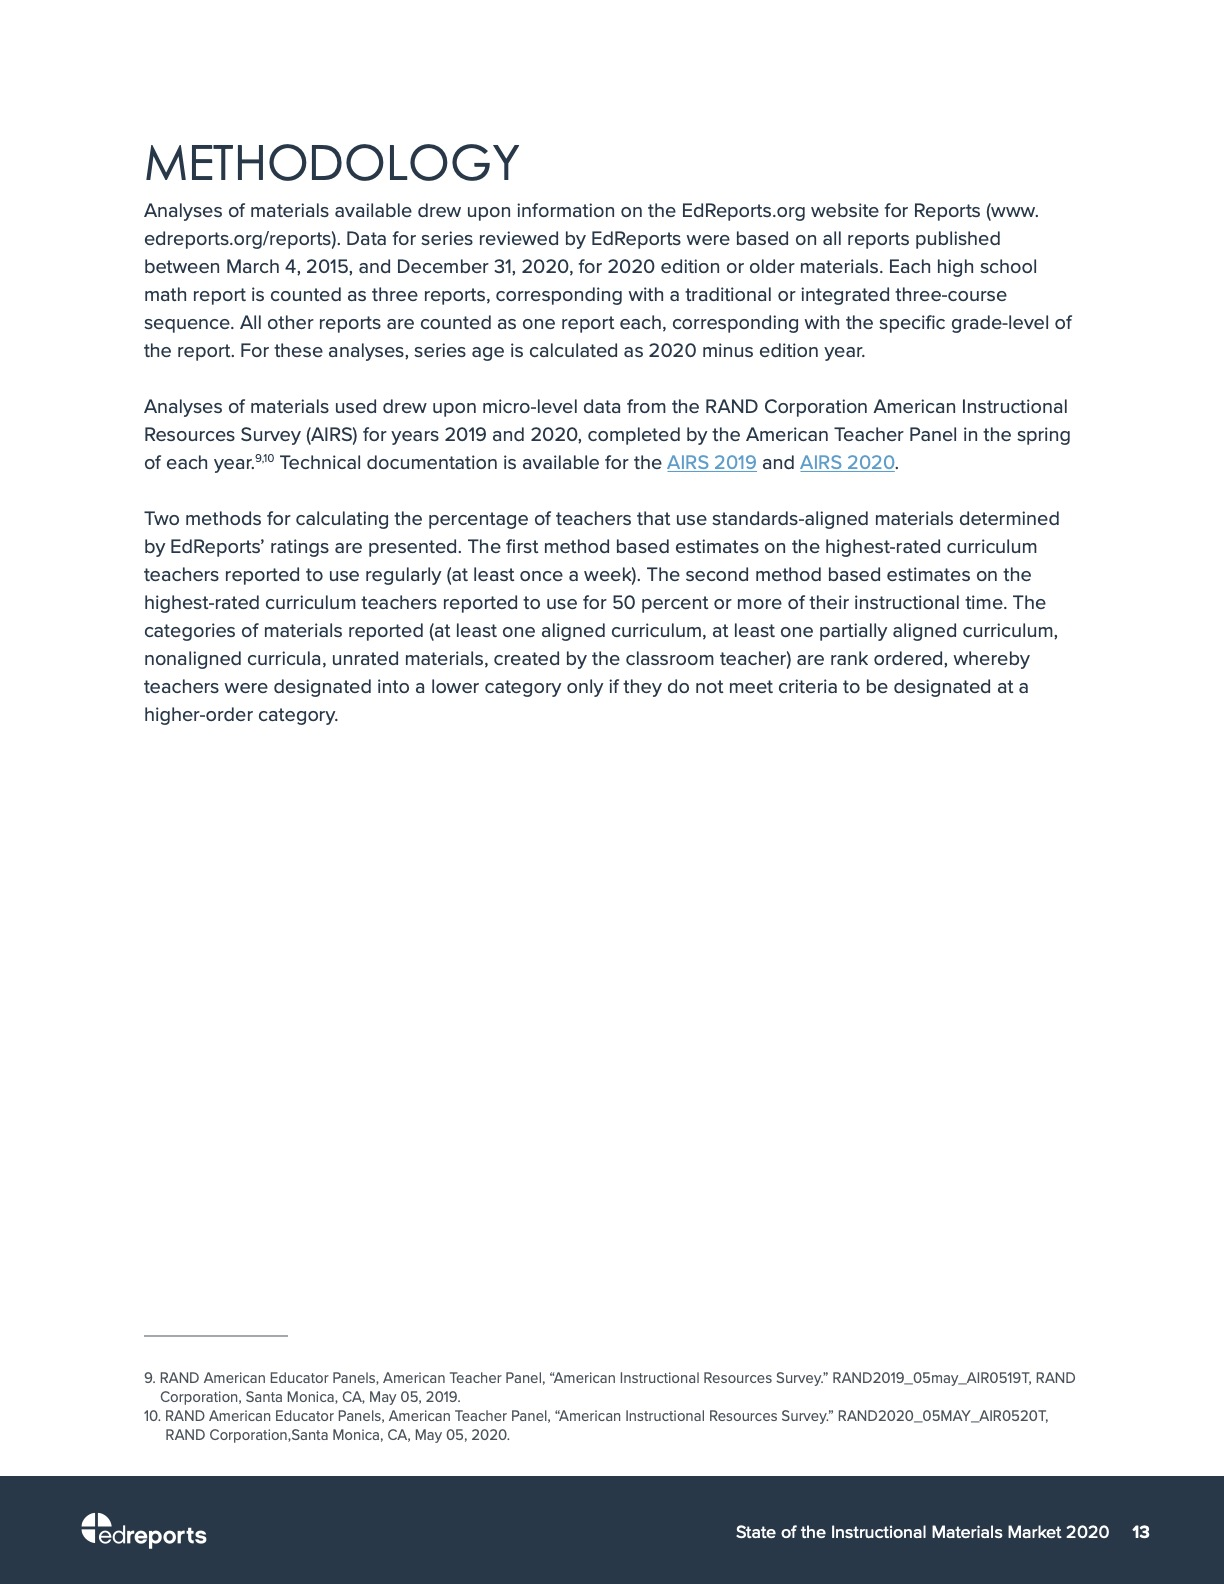 EdReports-2020-State-of-the-Market-Use-of-Aligned-Materials_FIN_13.jpg